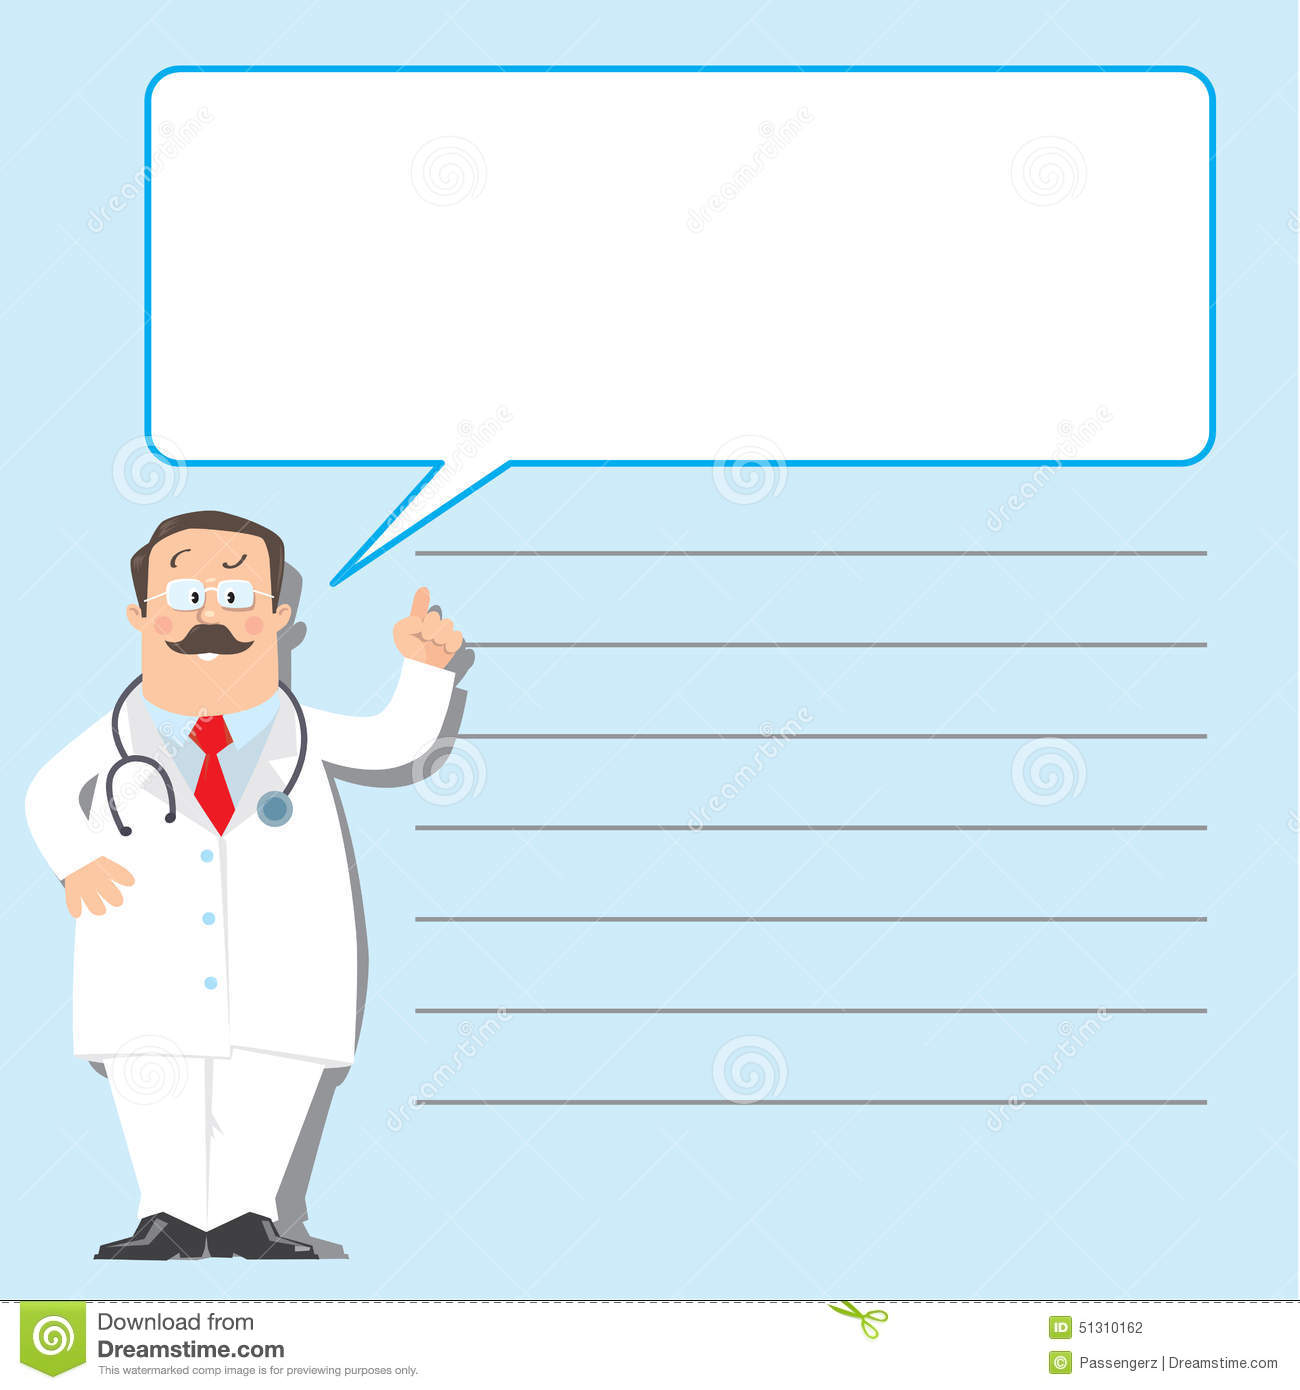 Design Template With Funny Doctor Stock Vector - Illustration of ...